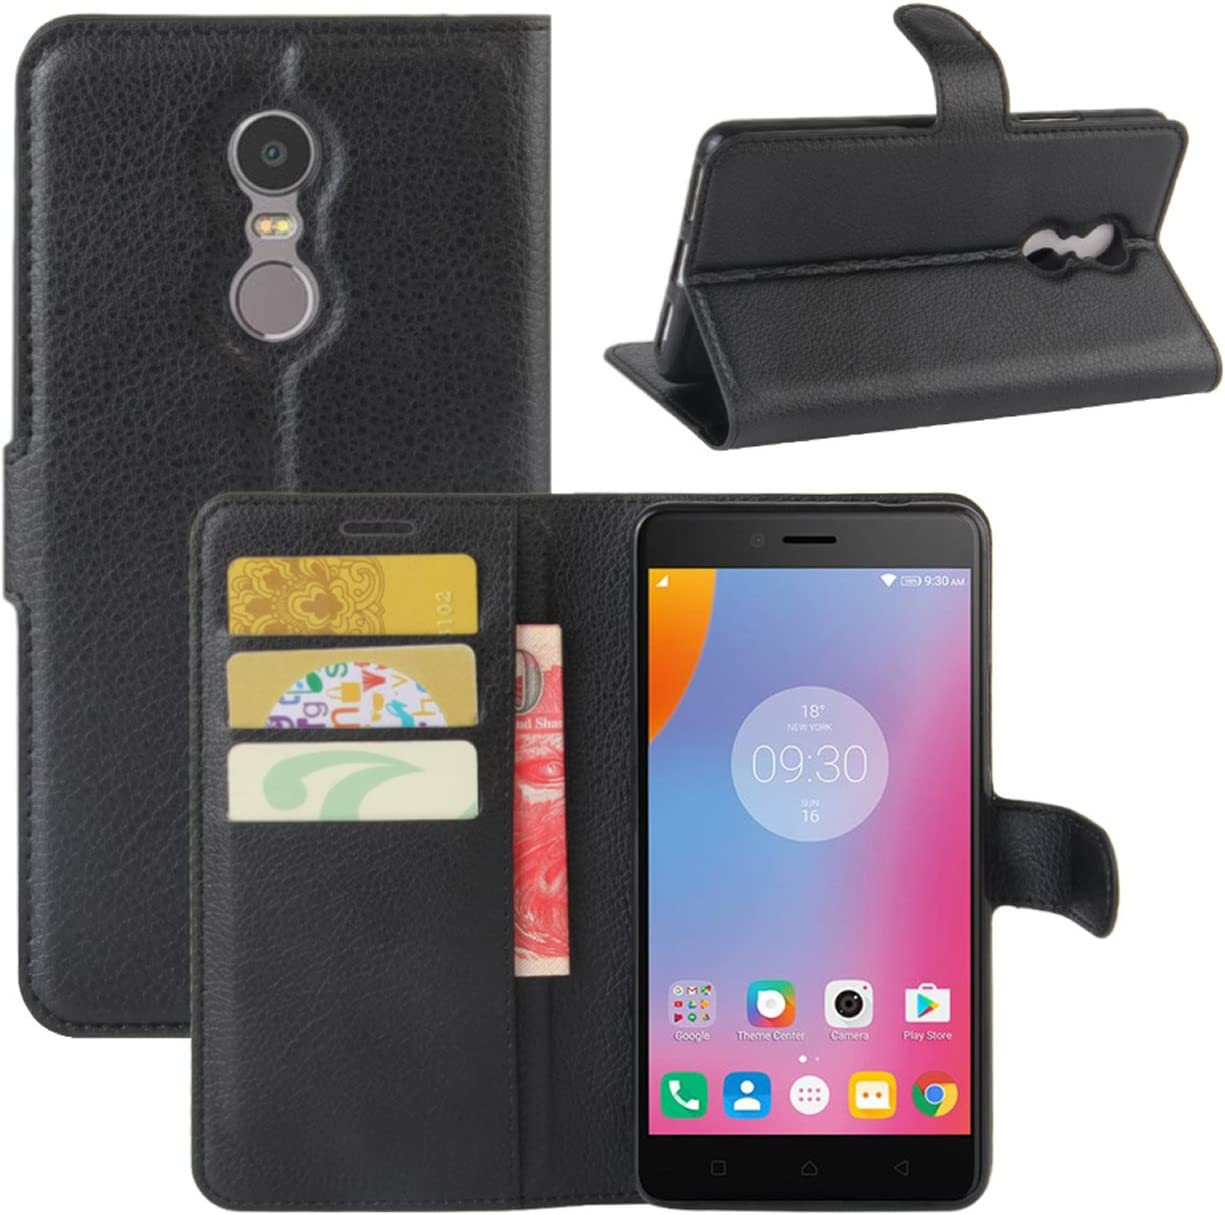 Lenovo K6 Note Case, Fettion Premium PU Leather Wallet Flip Phone Protective Case Cover with Card Slots, Stand Feature and Magnetic Closure for Lenovo K6 Note Smartphone (Wallet - Black)